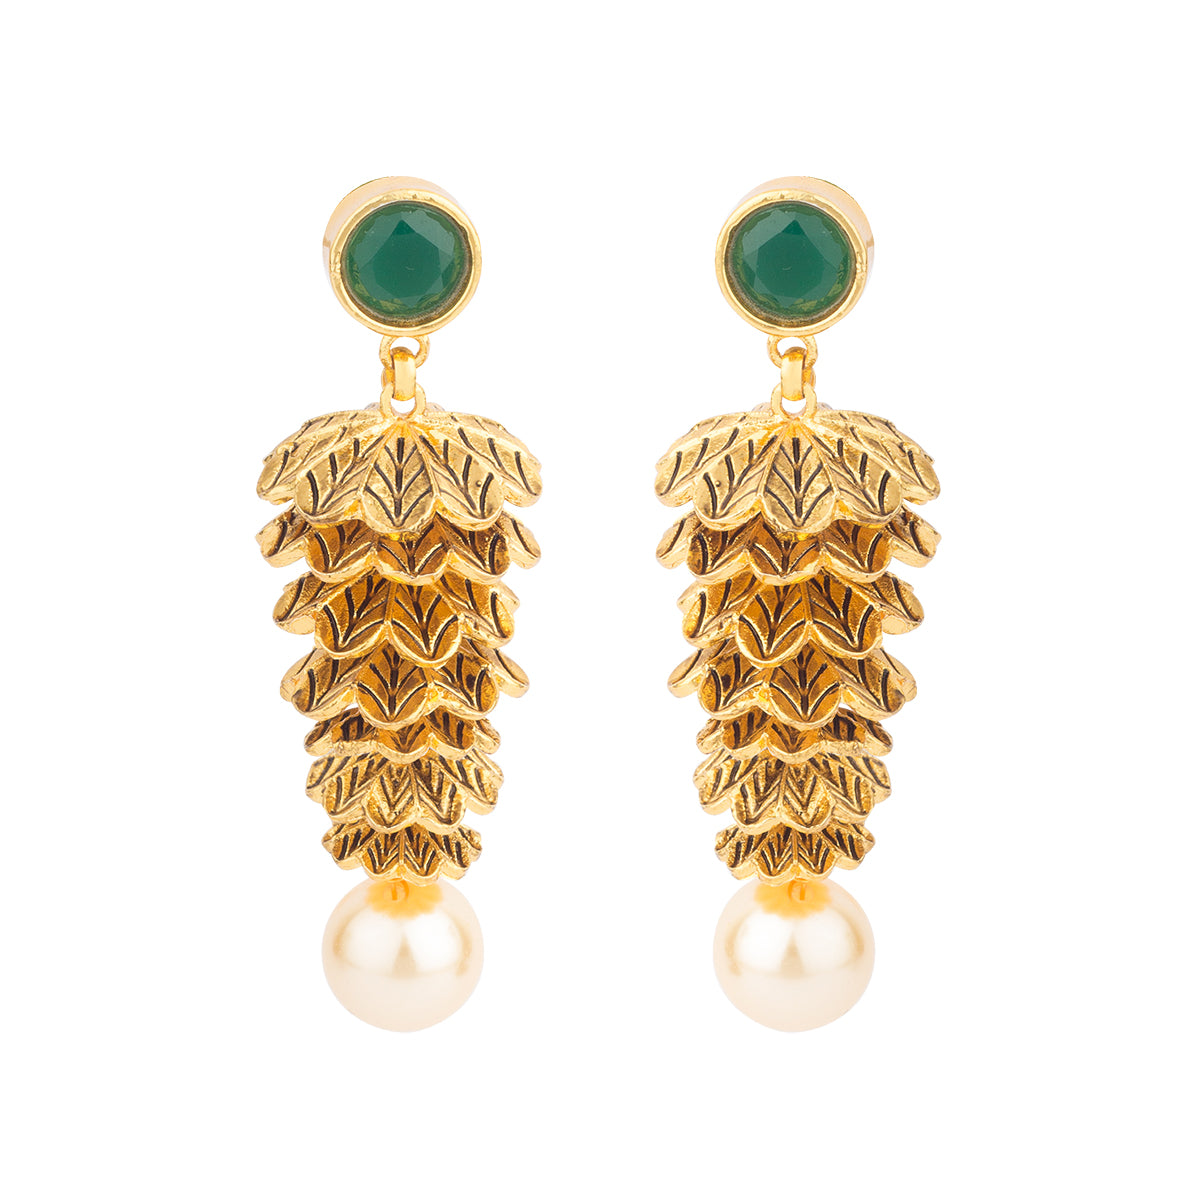 Layers of leaves- This earring is curated with a green stone at the top with a white pearl hanging.